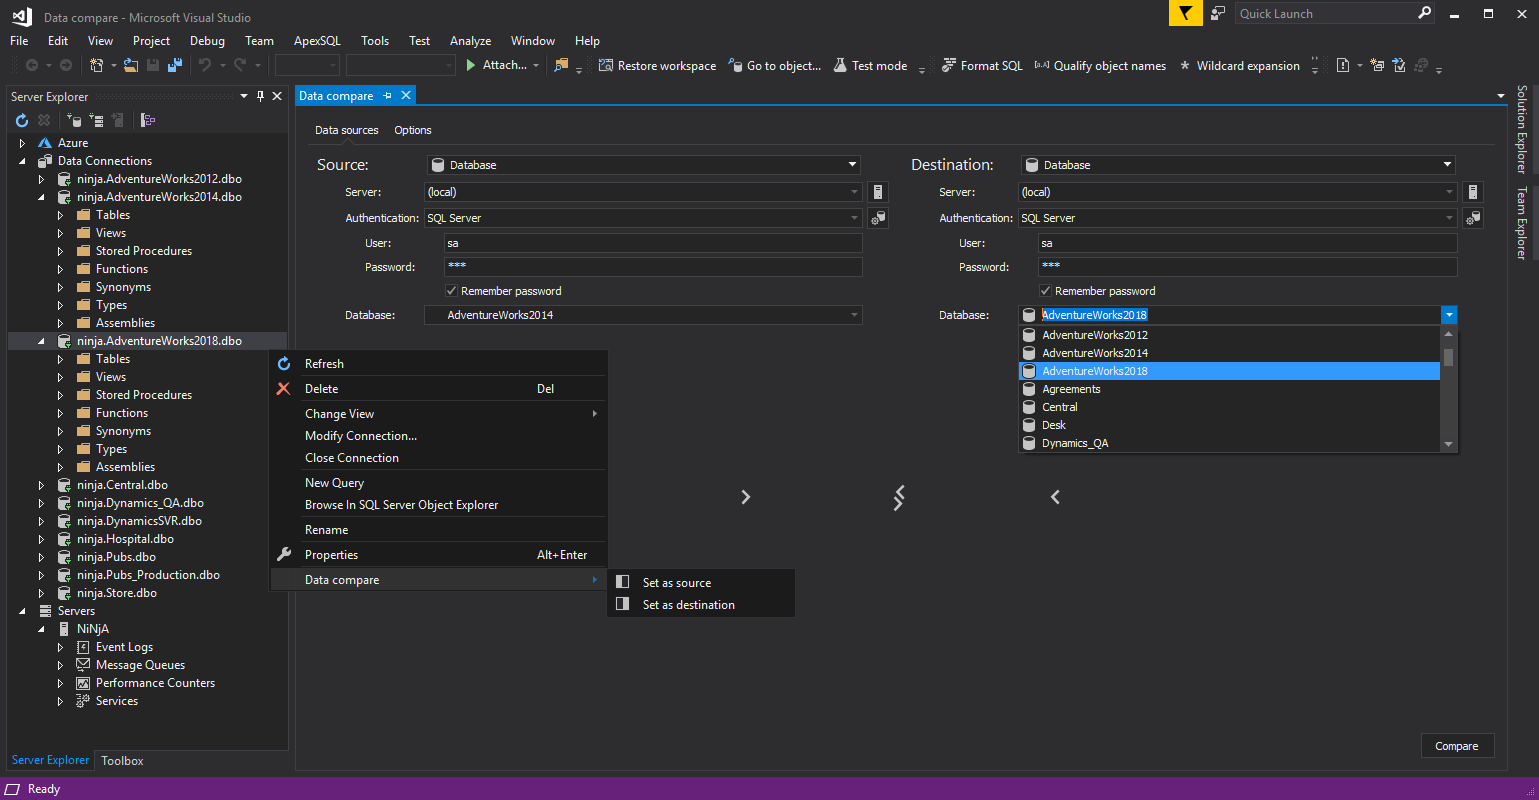 Launch a SQL data compare session directly from Visual Studio